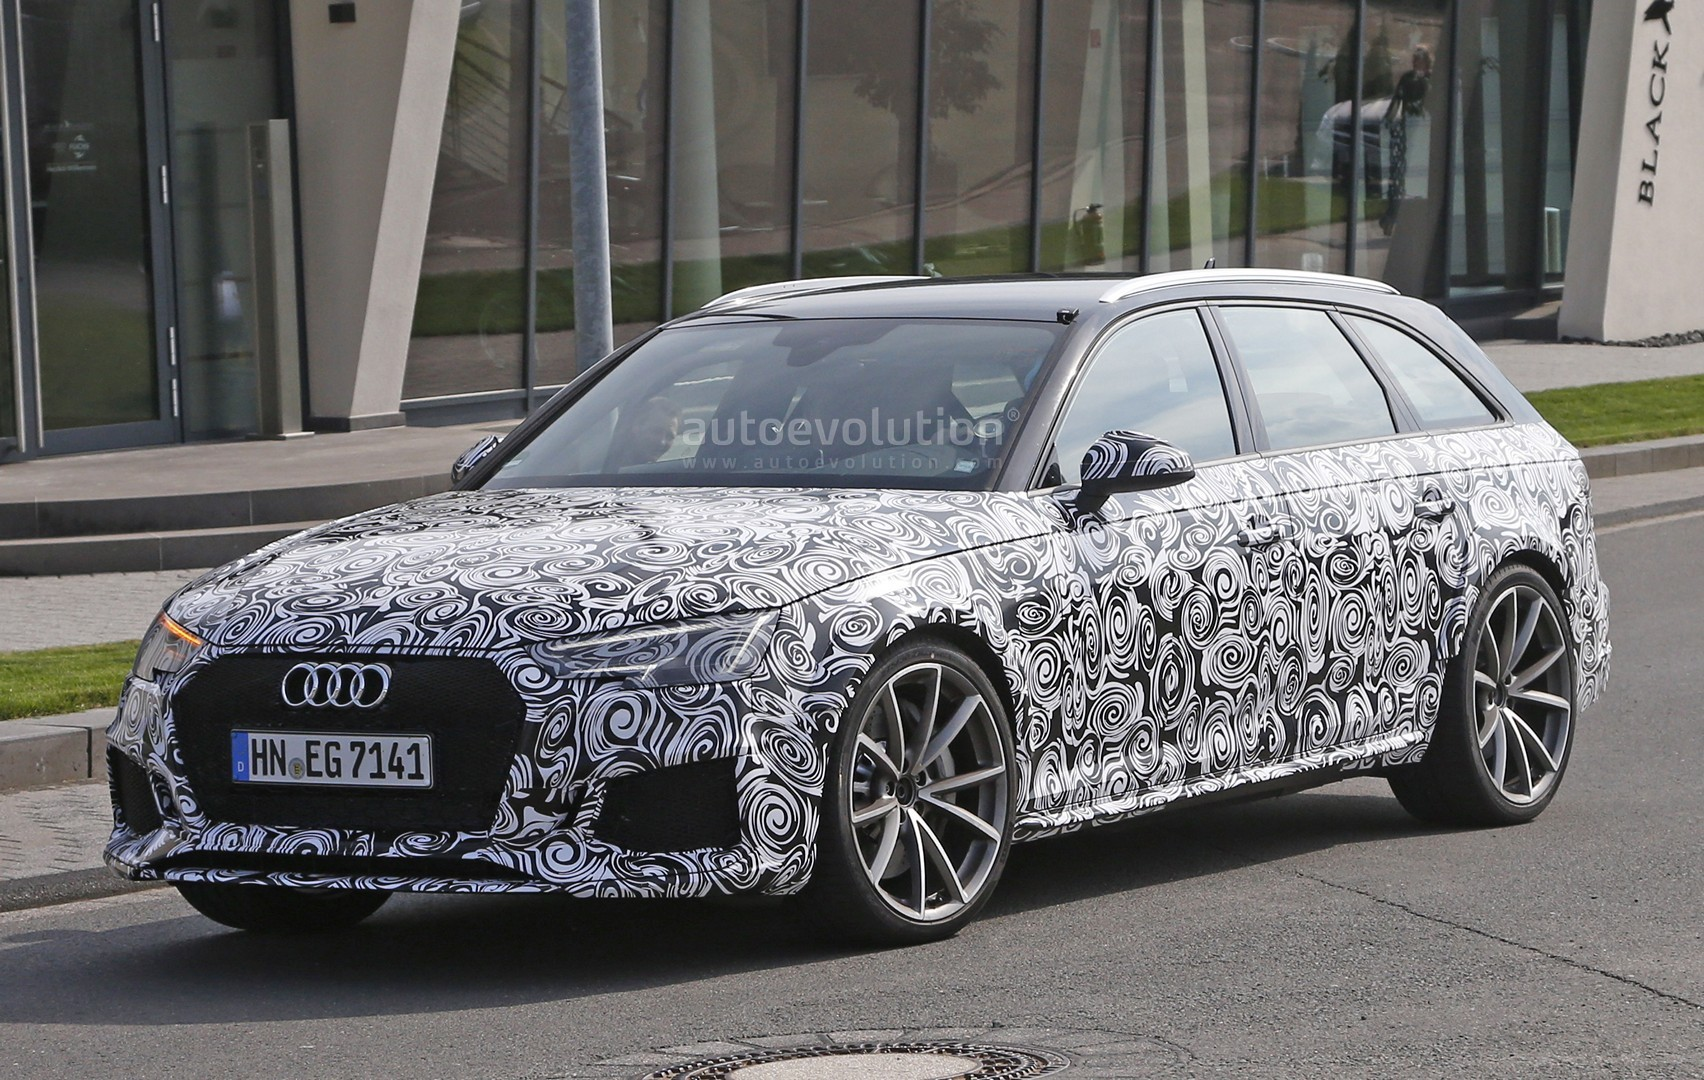 2016 Audi Q5 >> Spyshots: 2018 Audi RS4 Avant Prototype Looks Very Muscular - autoevolution